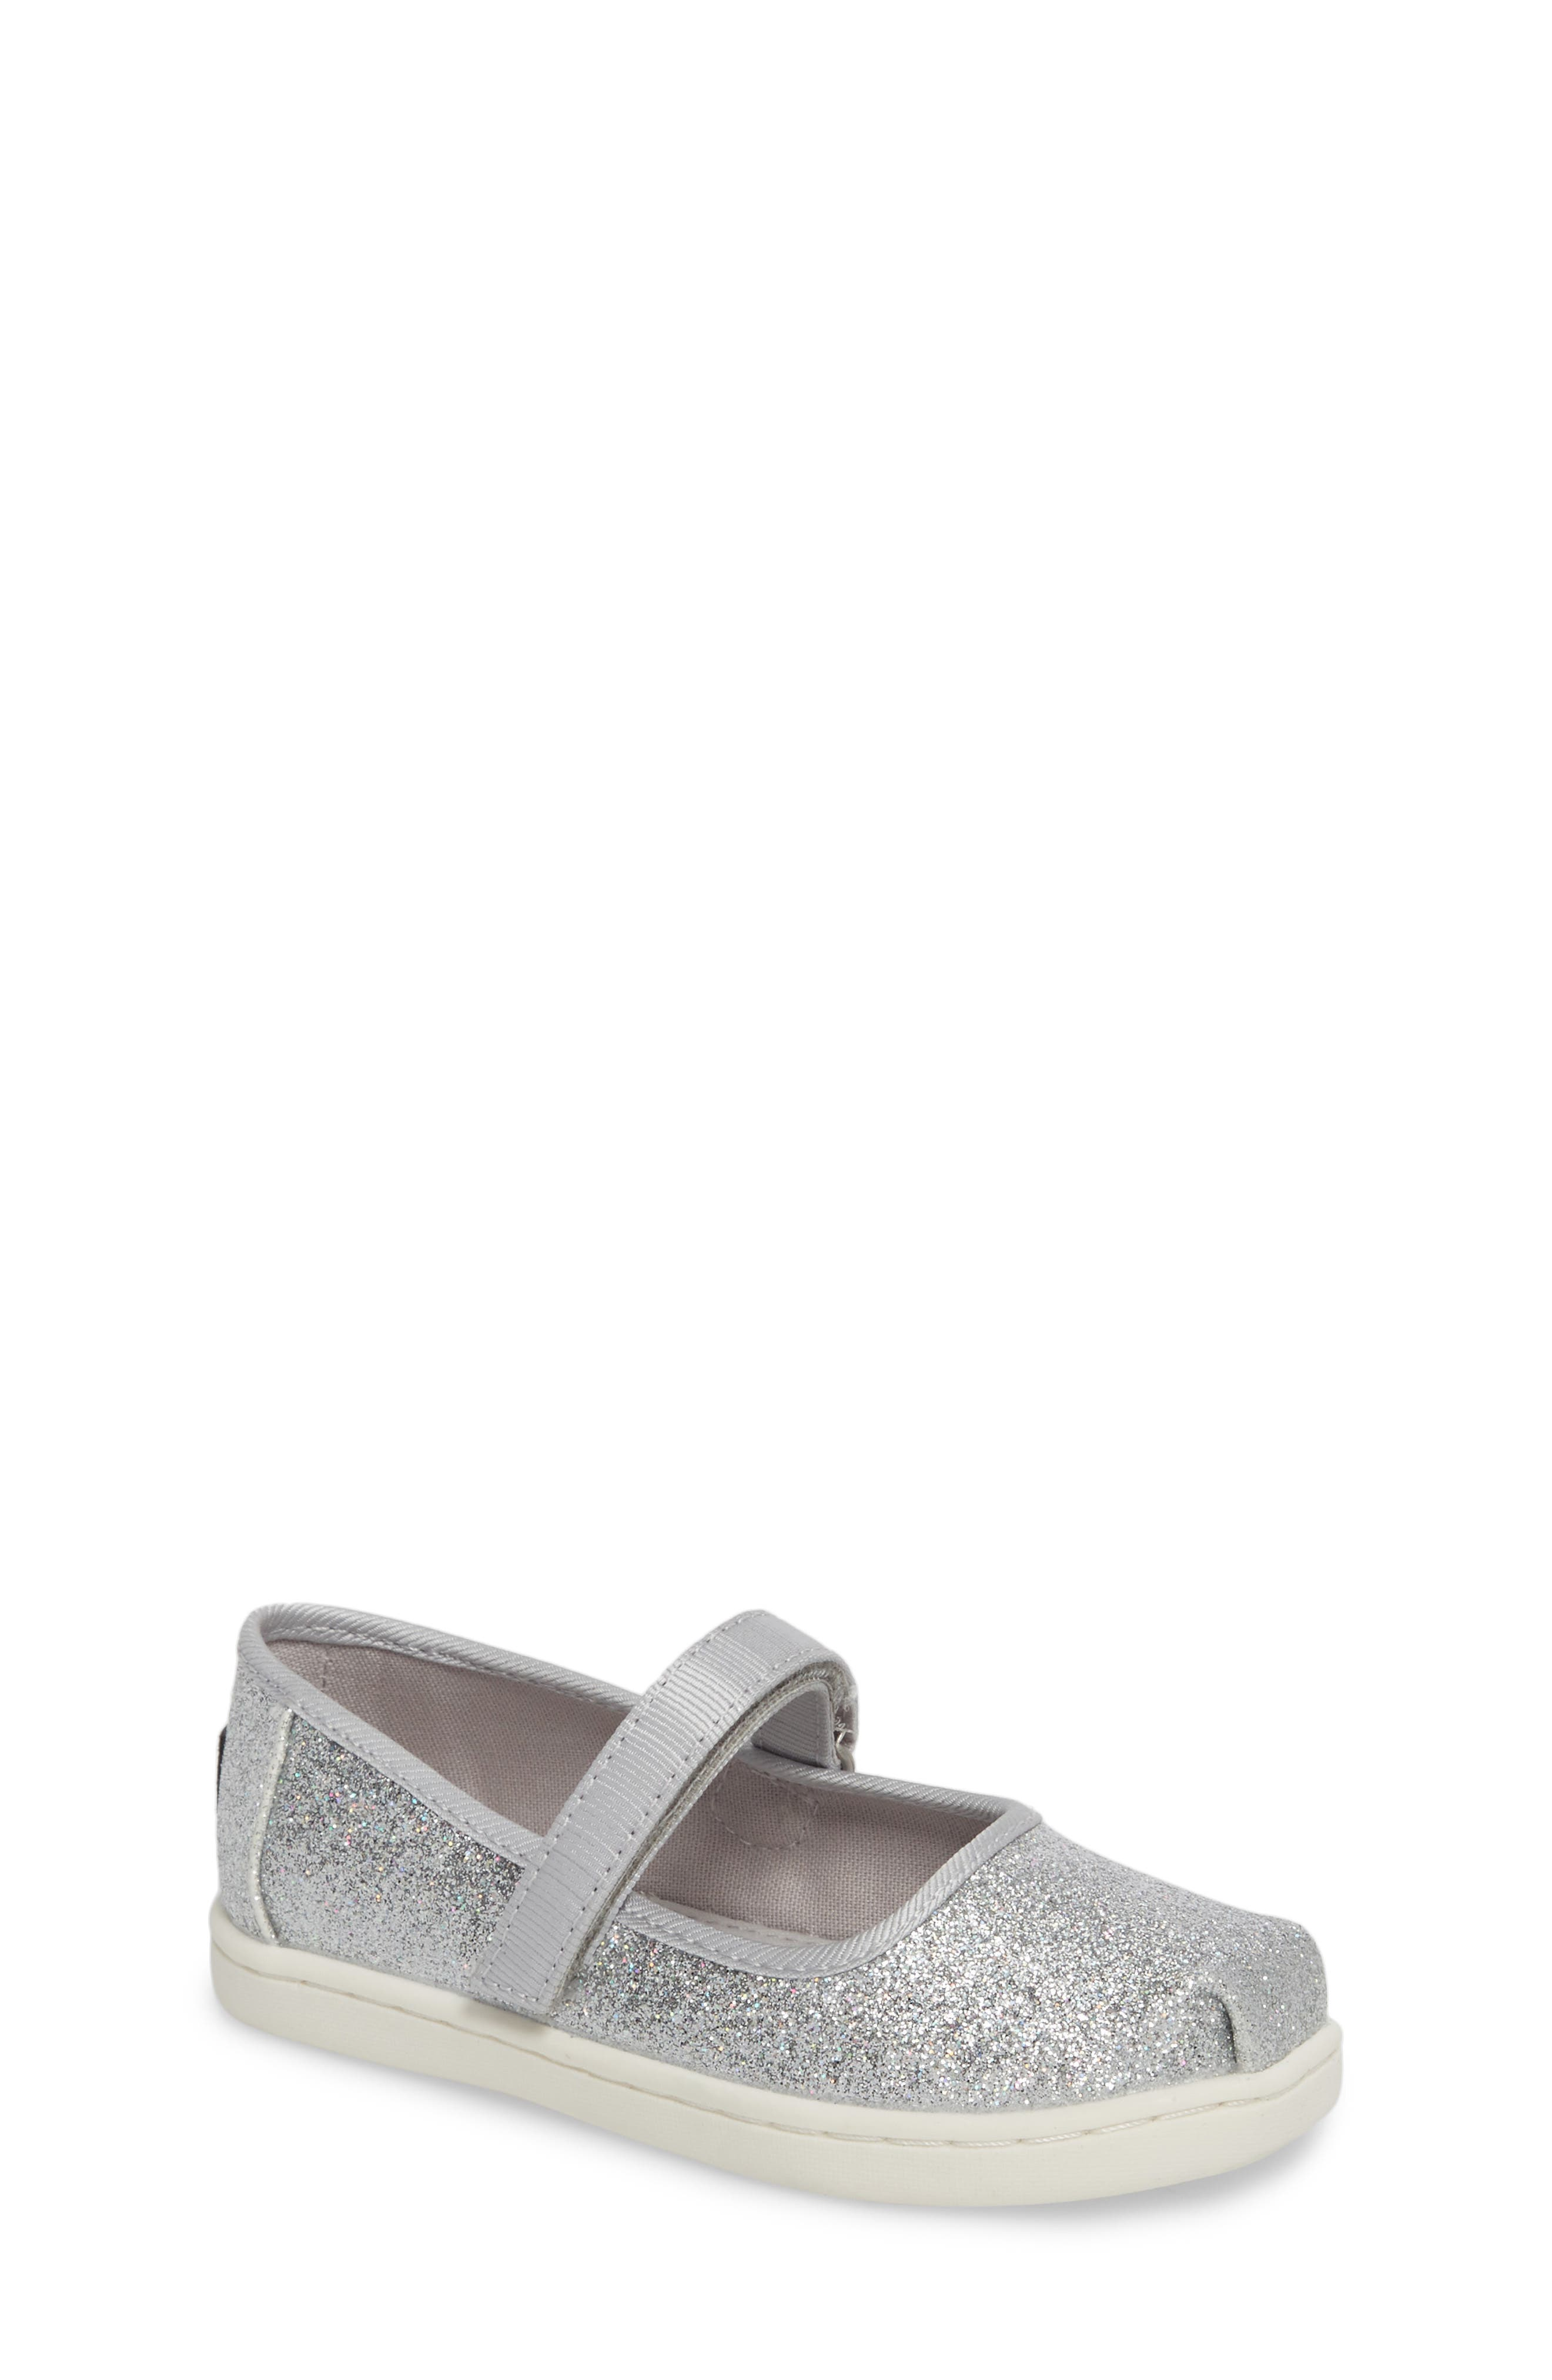 Mary Jane Sneaker,                         Main,                         color, Silver Iridescent Glimmer